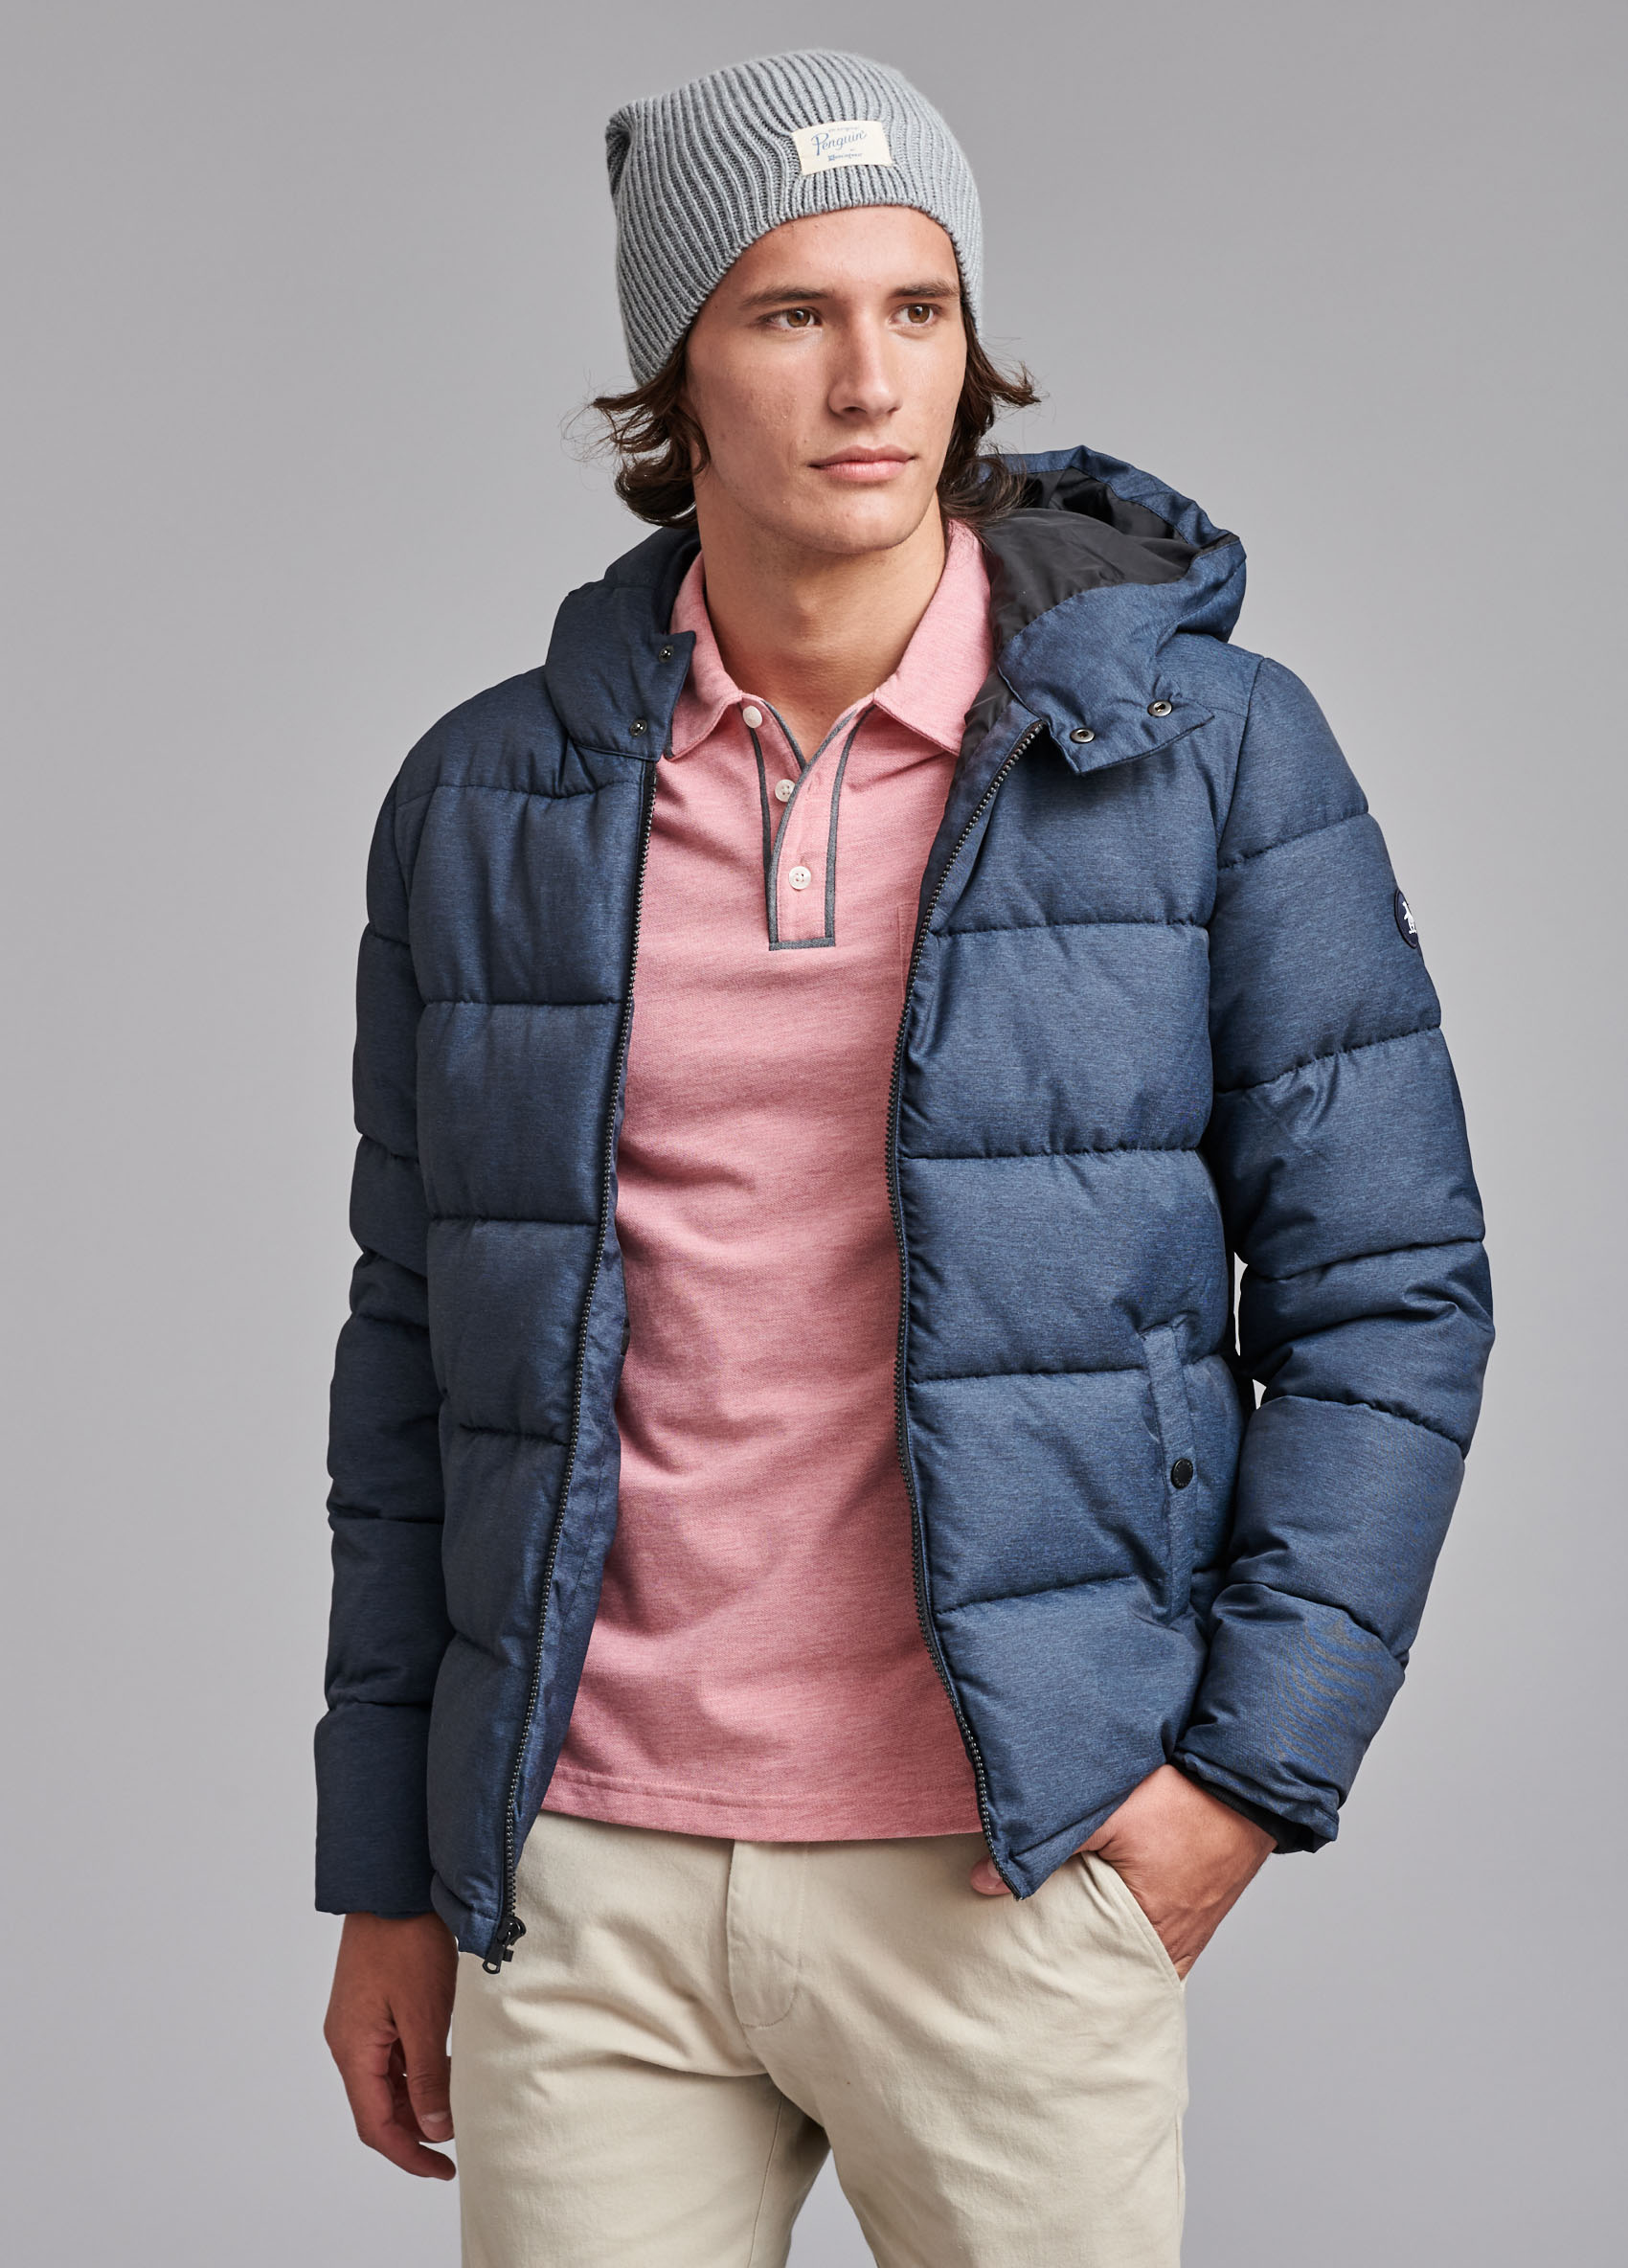 penguin_insulated-melange-puffer-jacket_01-20-2019__picture-8937